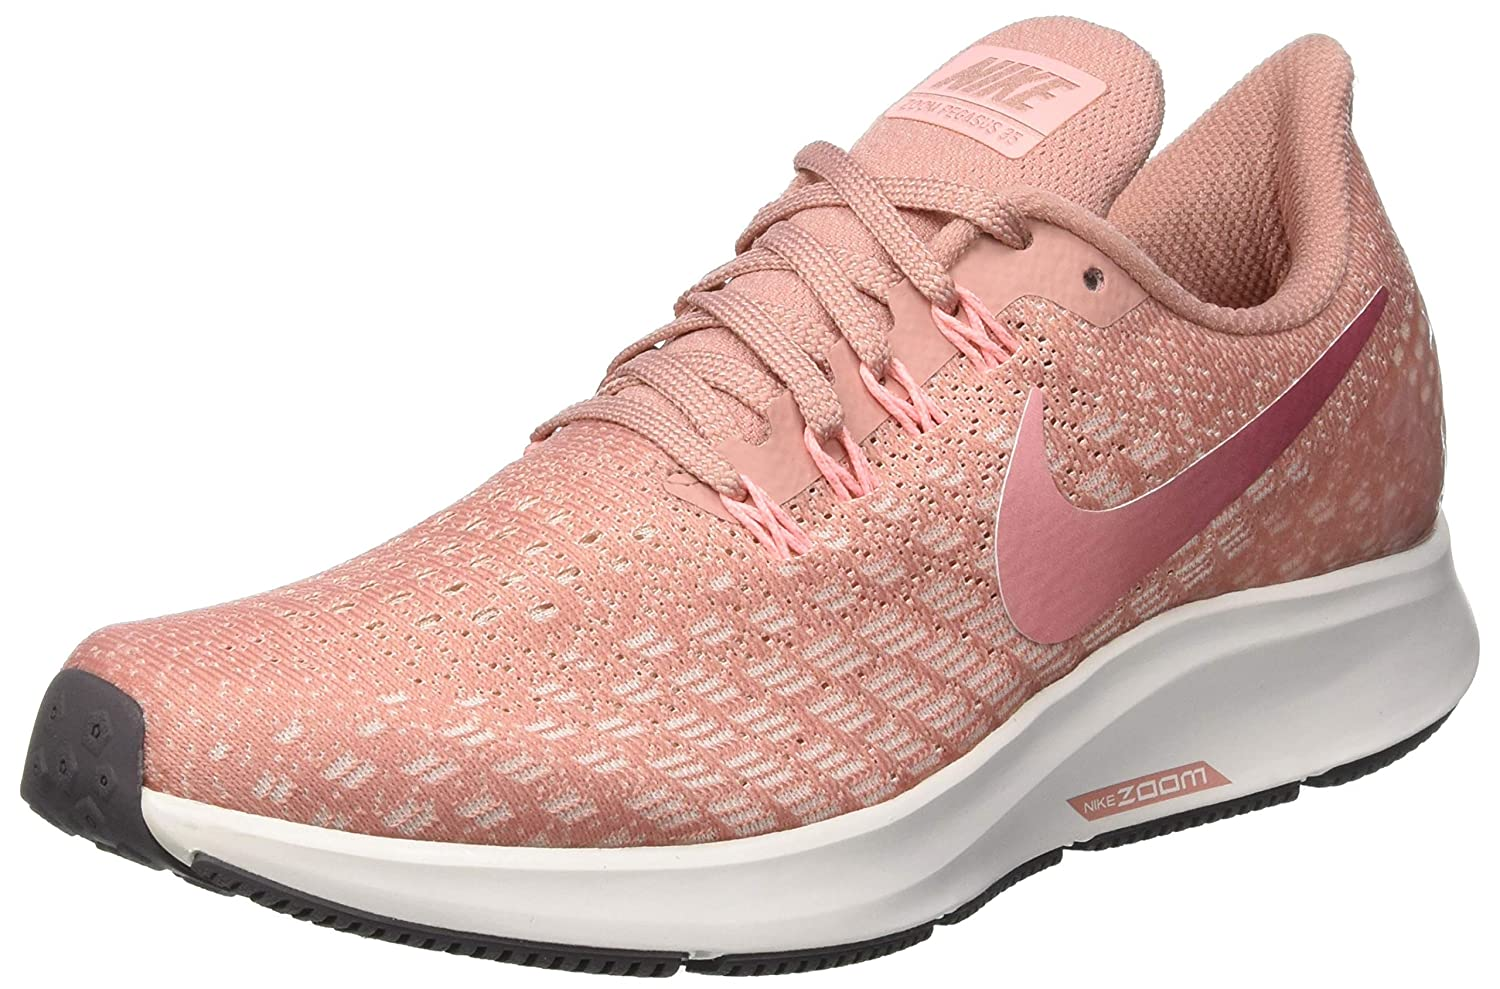 buy online 047e7 433d8 Nike Women s Air Zoom Pegasus 35 Running Shoes Rust Pink Guava Ice Pink Tint  Tropical Pink, 9.5 UK